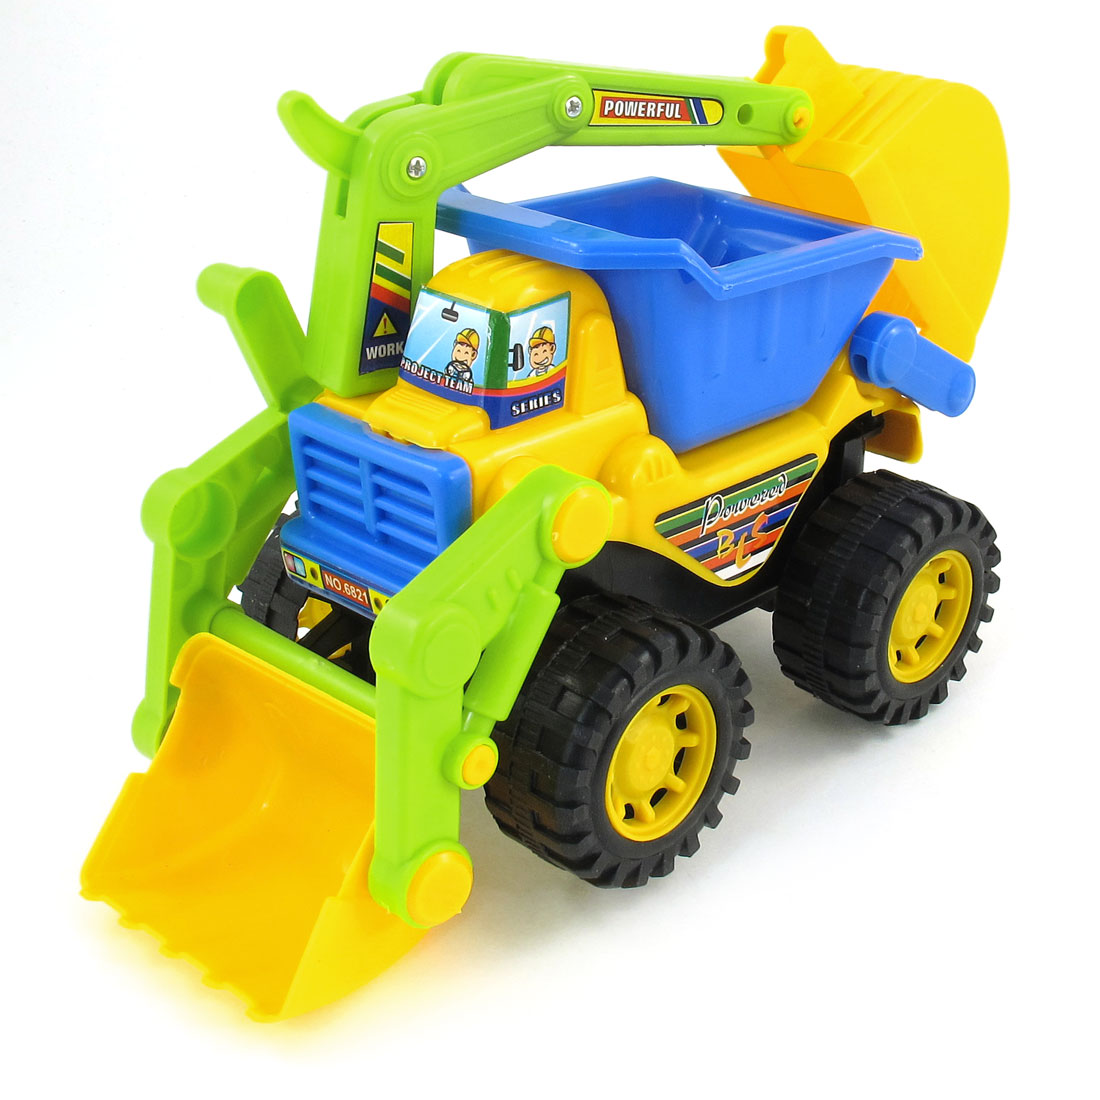 Multi Color Plastic Engineering Earthworks Digger Car Toy for Child